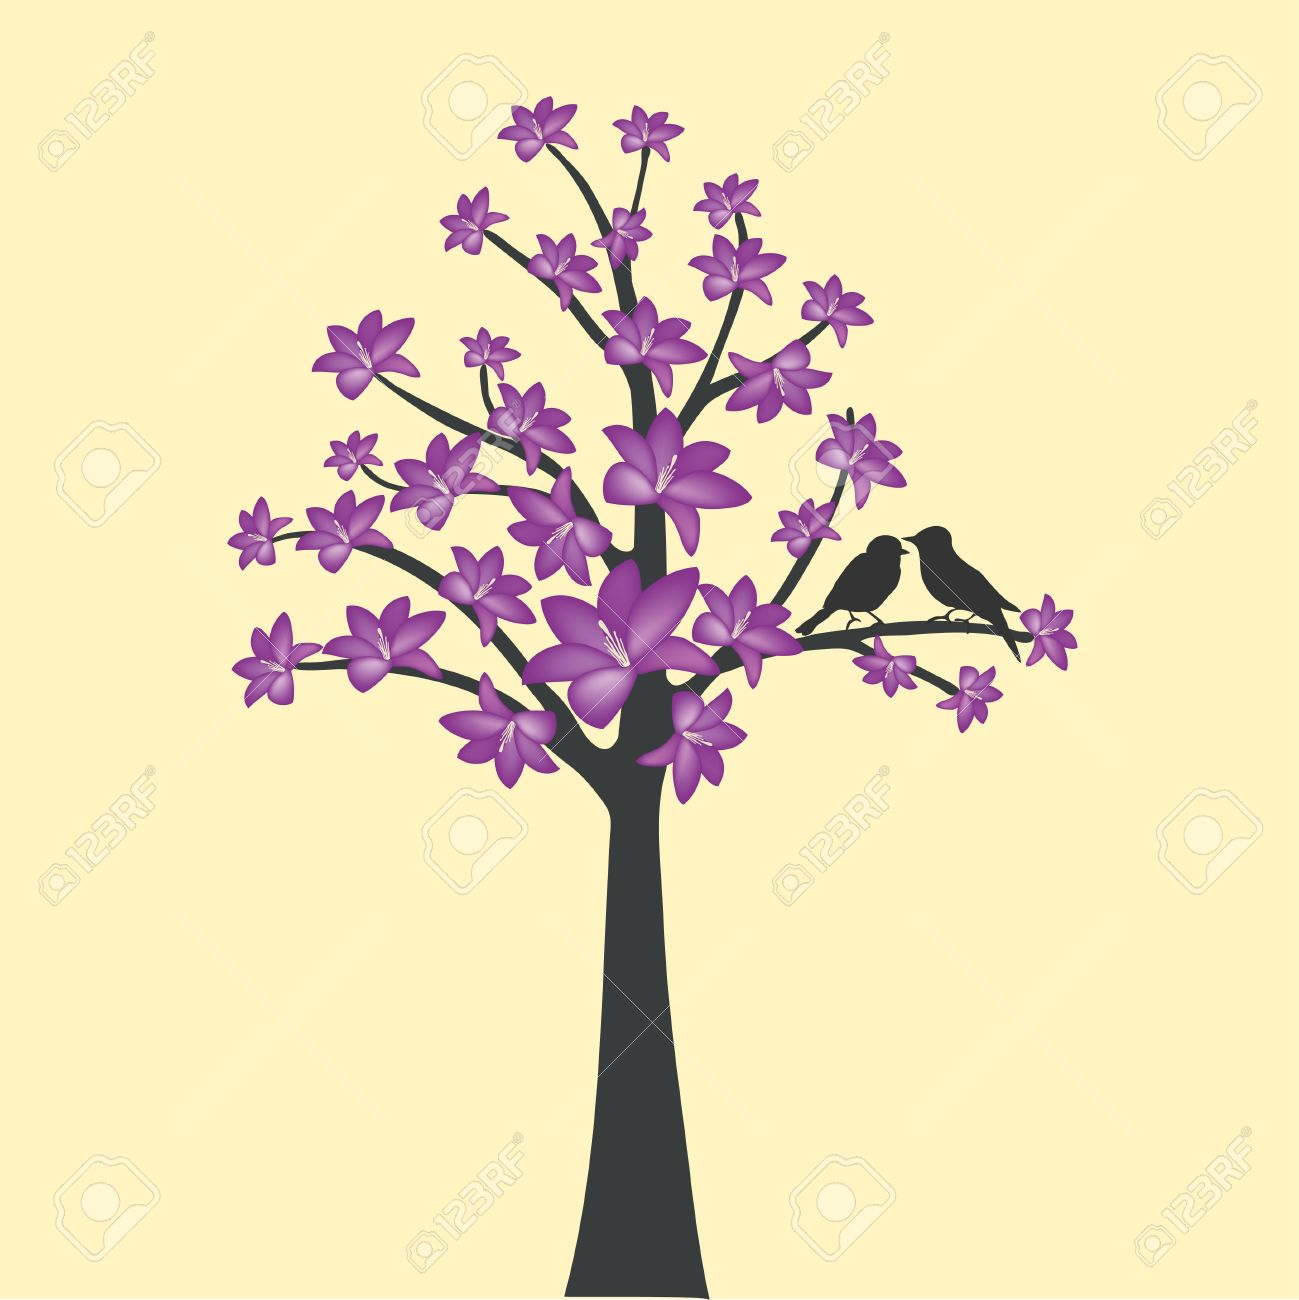 Card With Floral Tree And Love Bird Royalty Free Cliparts, Vectors.